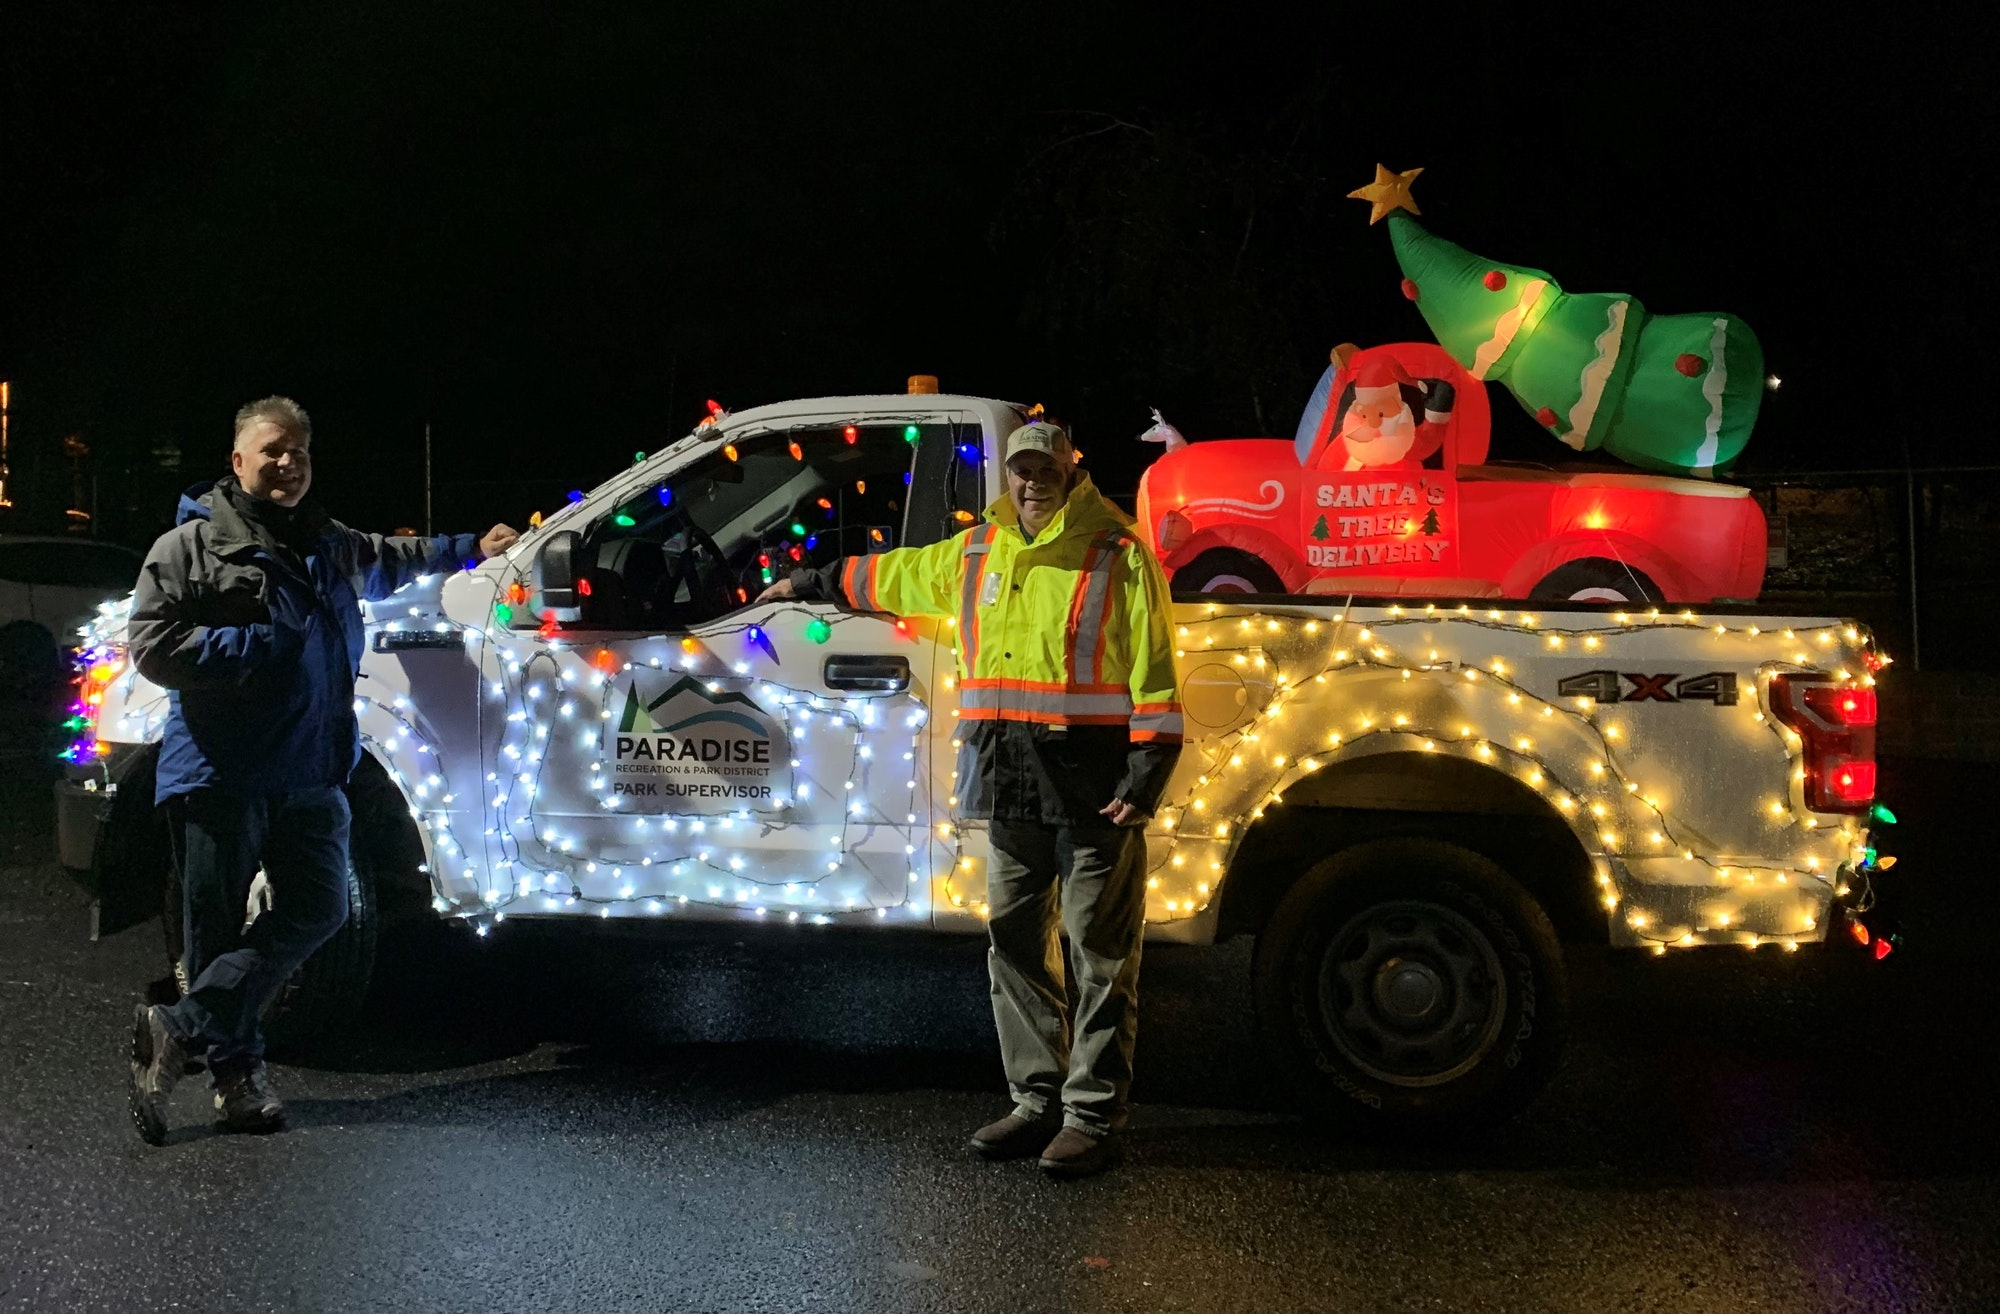 PRPD District Manager and Parks Supervisor smiling next to PRPD maintenance truck covered in bright Christmas lights